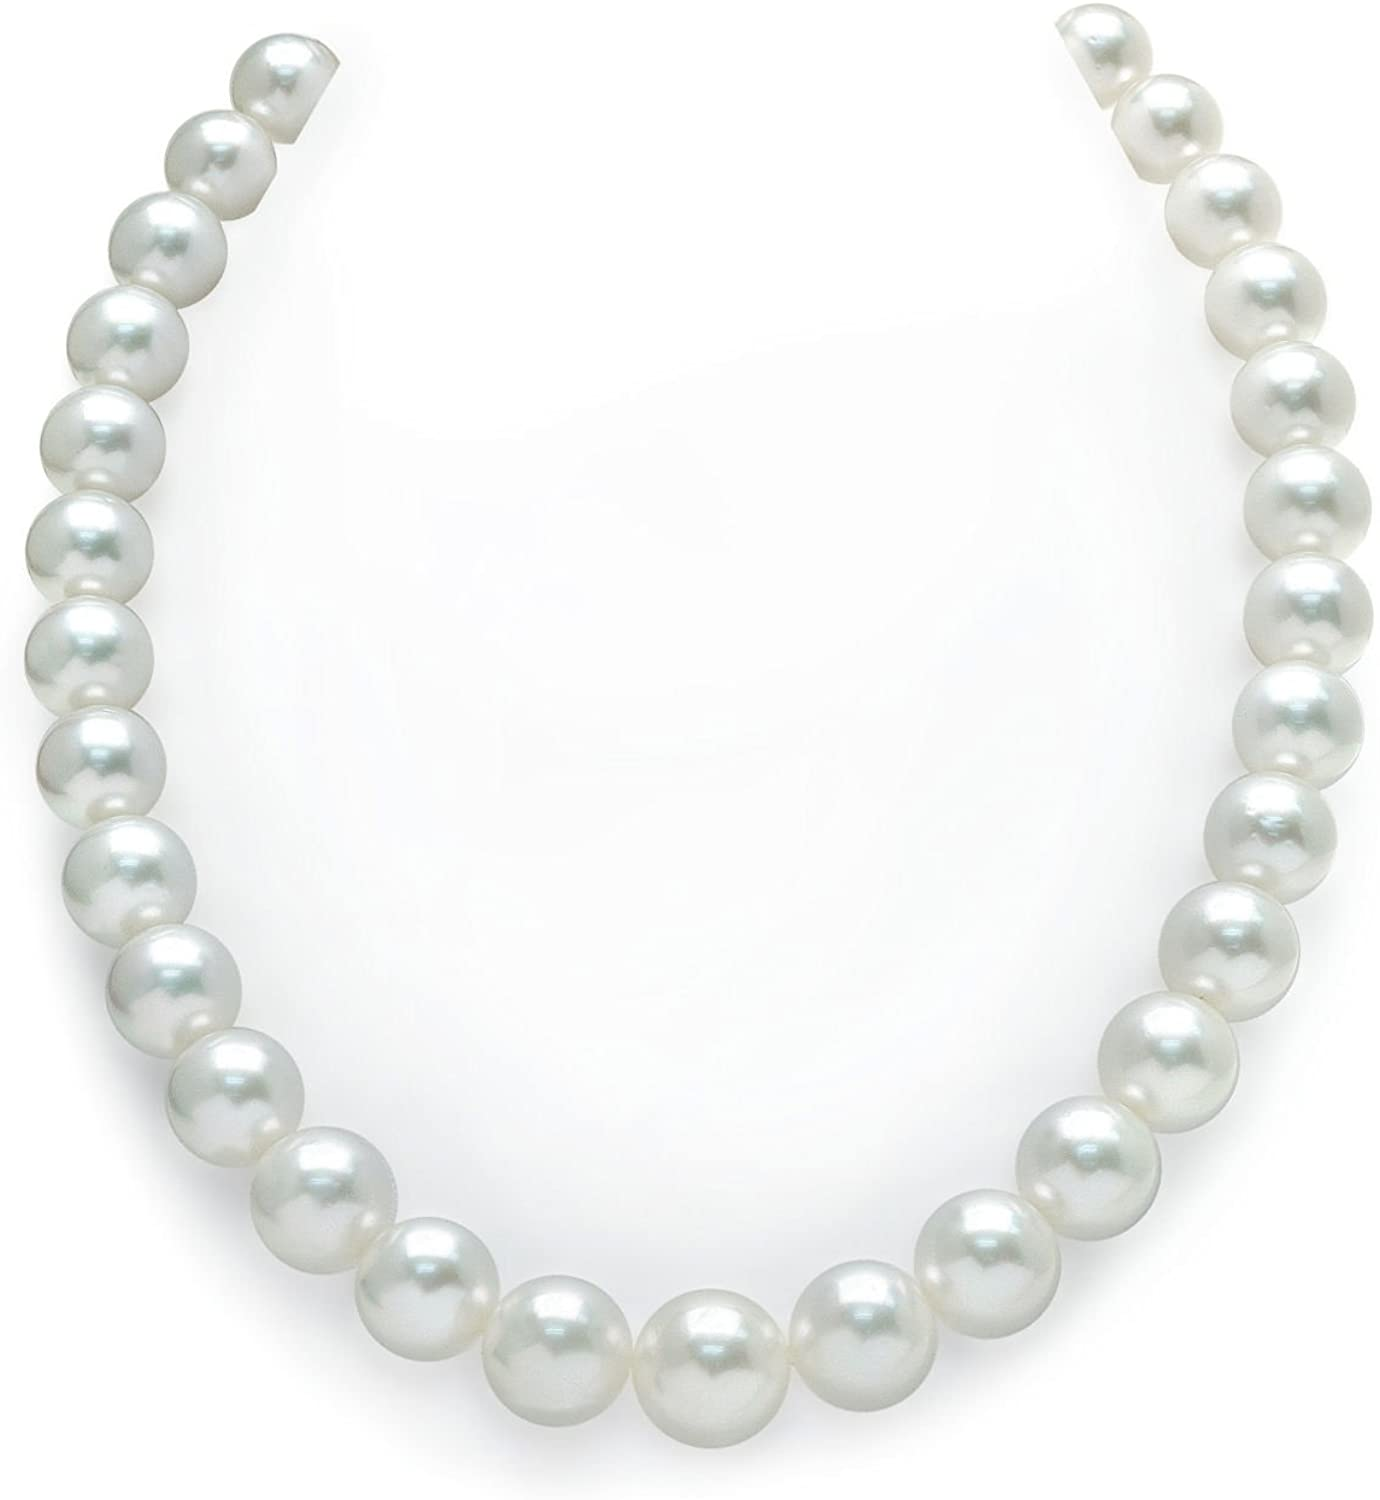 THE PEARL SOURCE 14K Gold 11-14mm Round Genuine White South Sea Cultured Pearl Necklace in 20